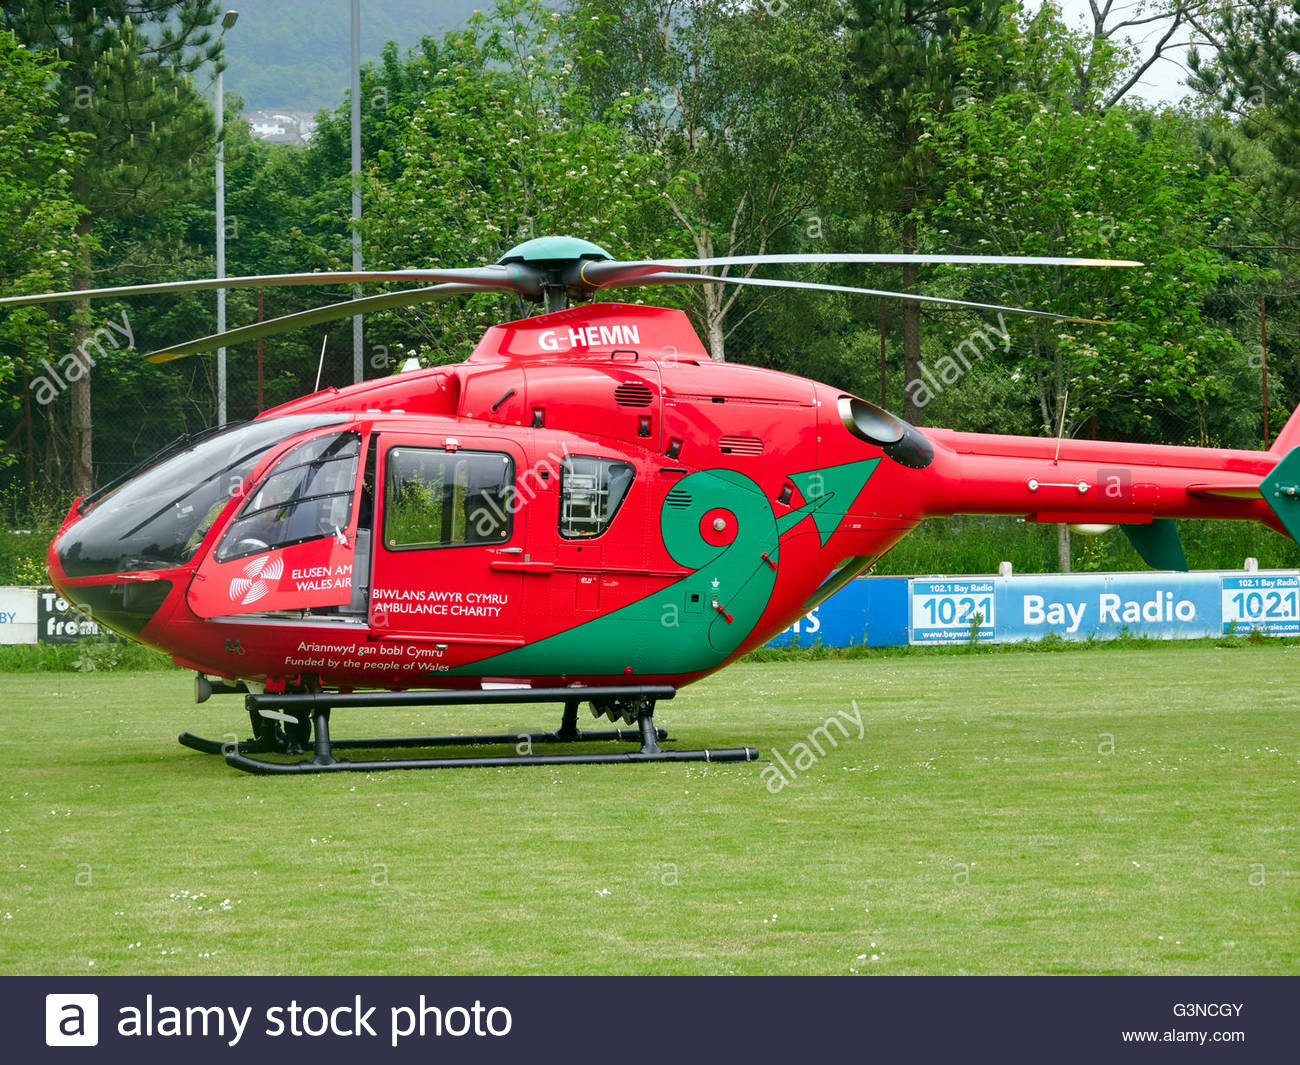 A Wales air ambulance EC 135 helicopter - Stock Image